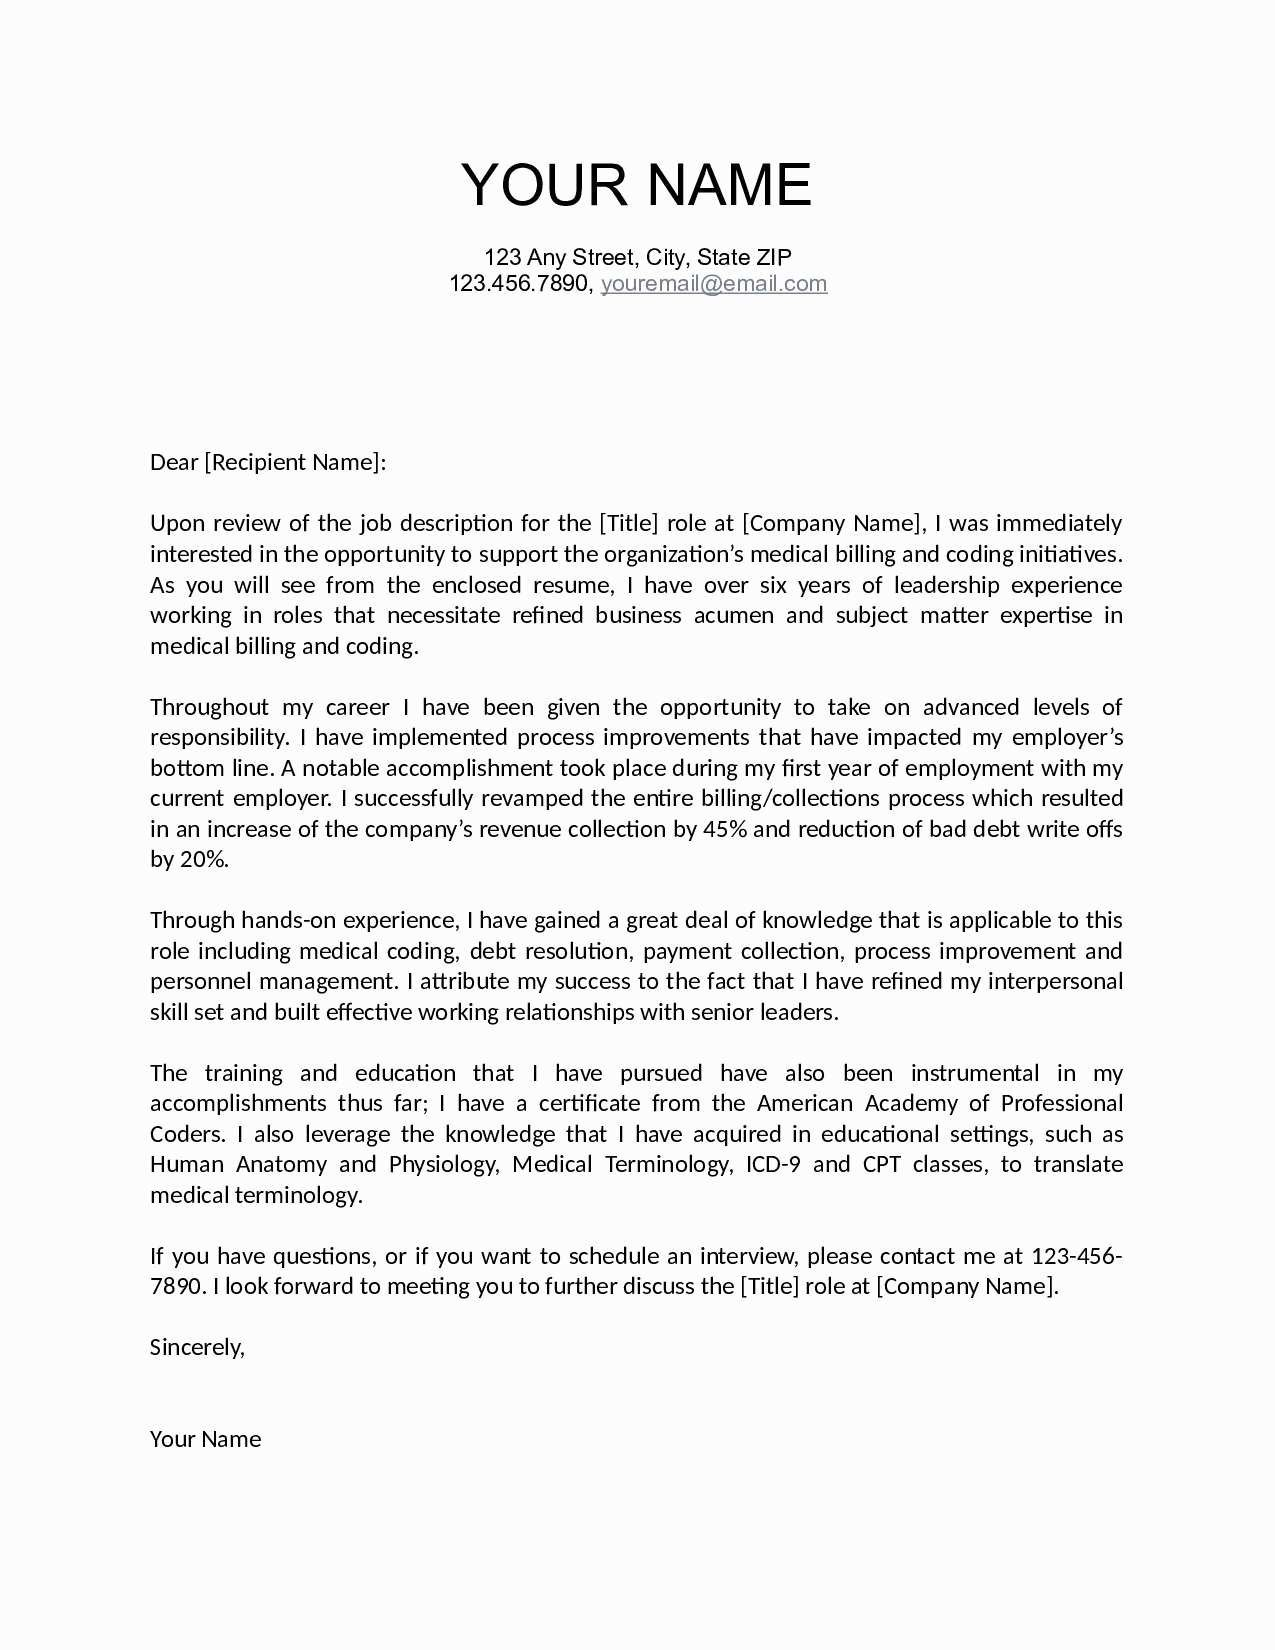 Dear Seller Letter Template - Things to Say In A Cover Letter for A Job